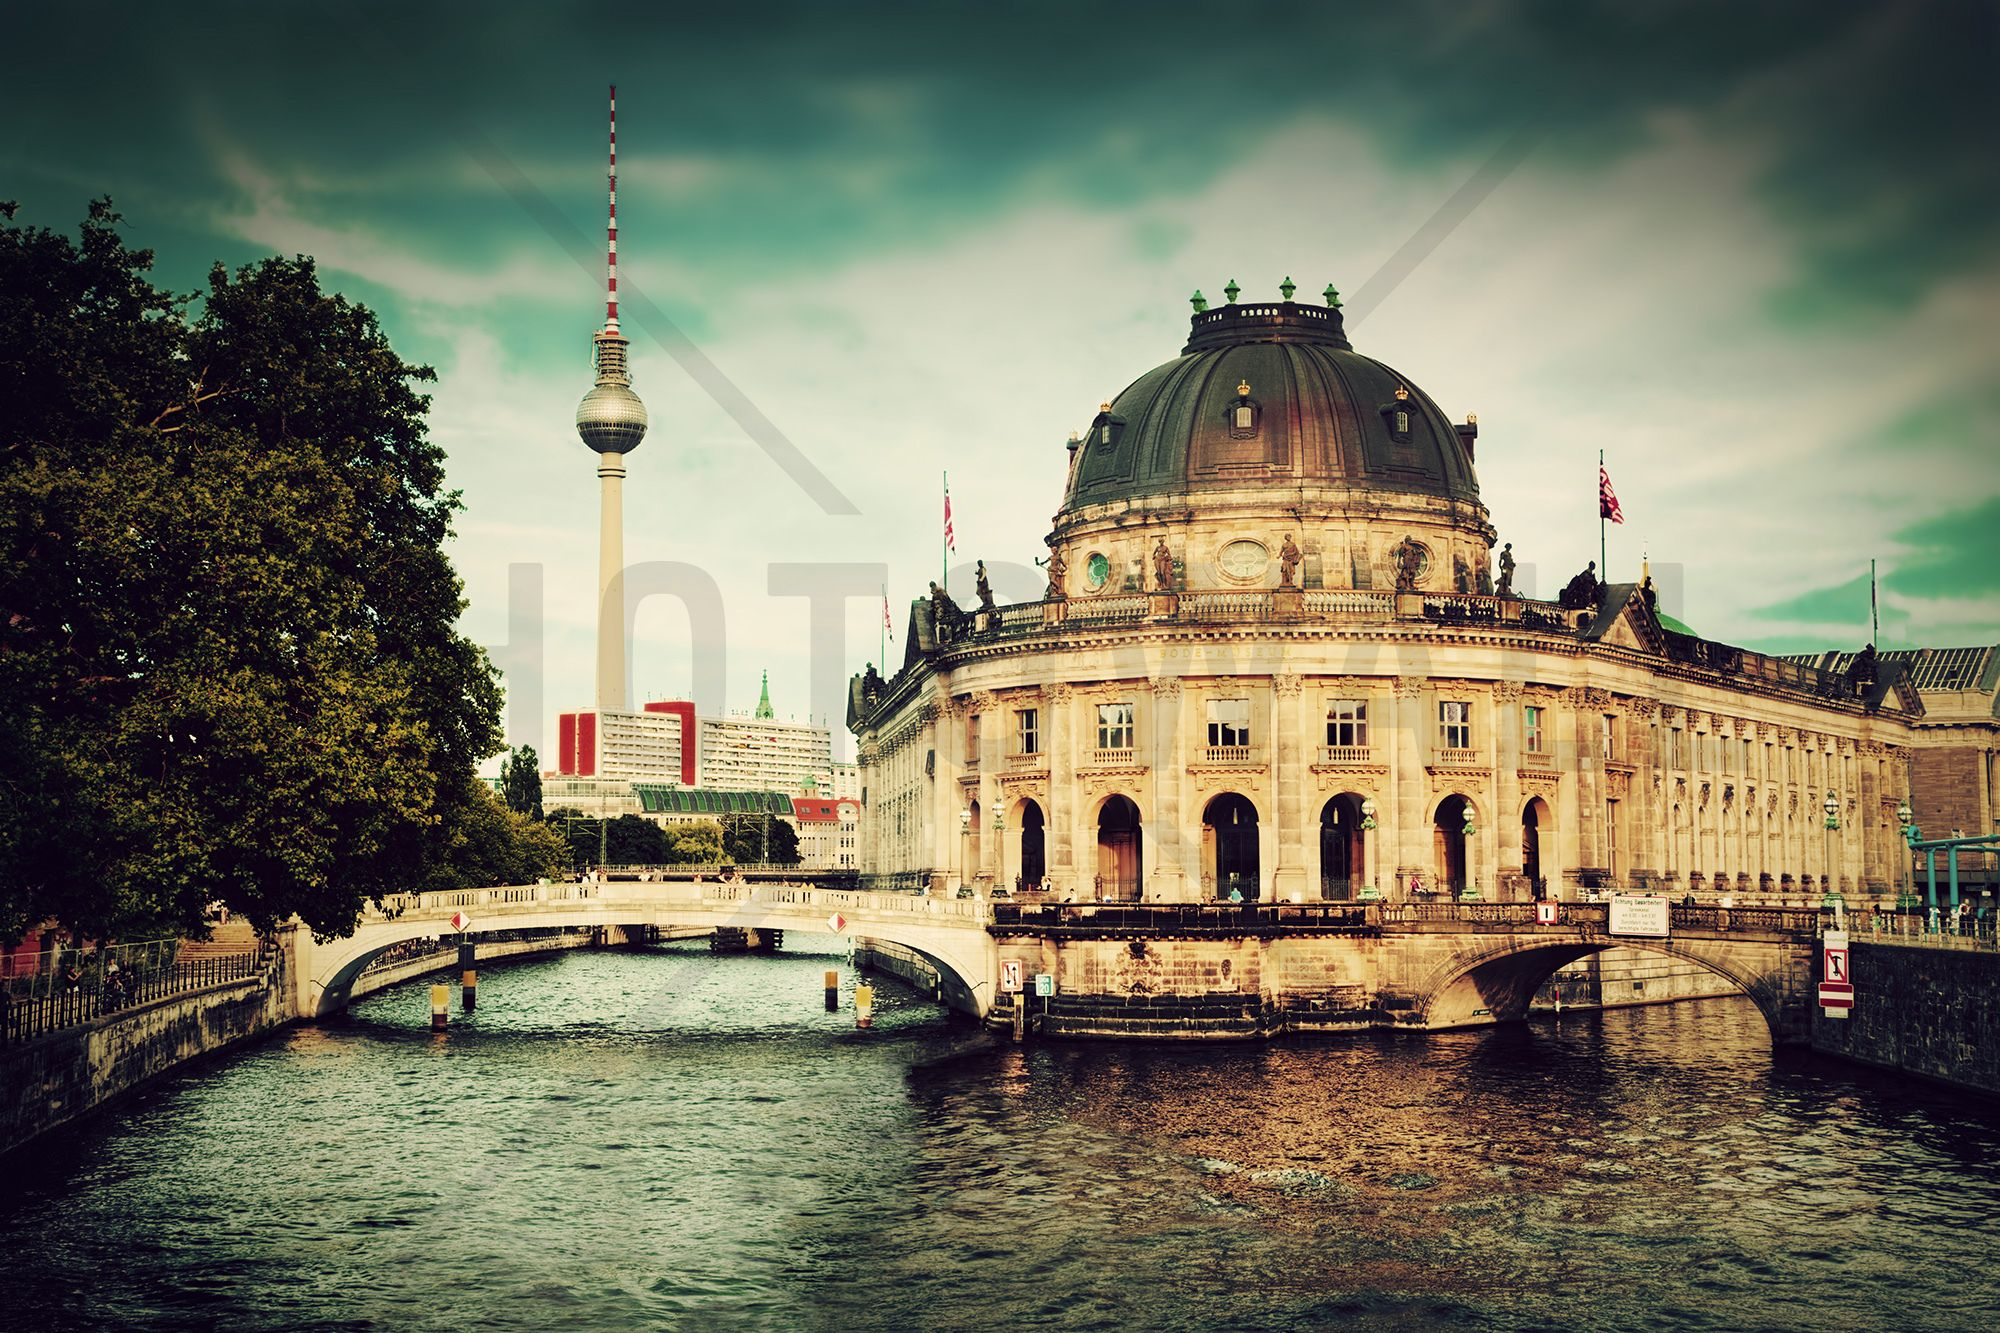 The Bode Museum In Berlin  Wall Mural & Photo